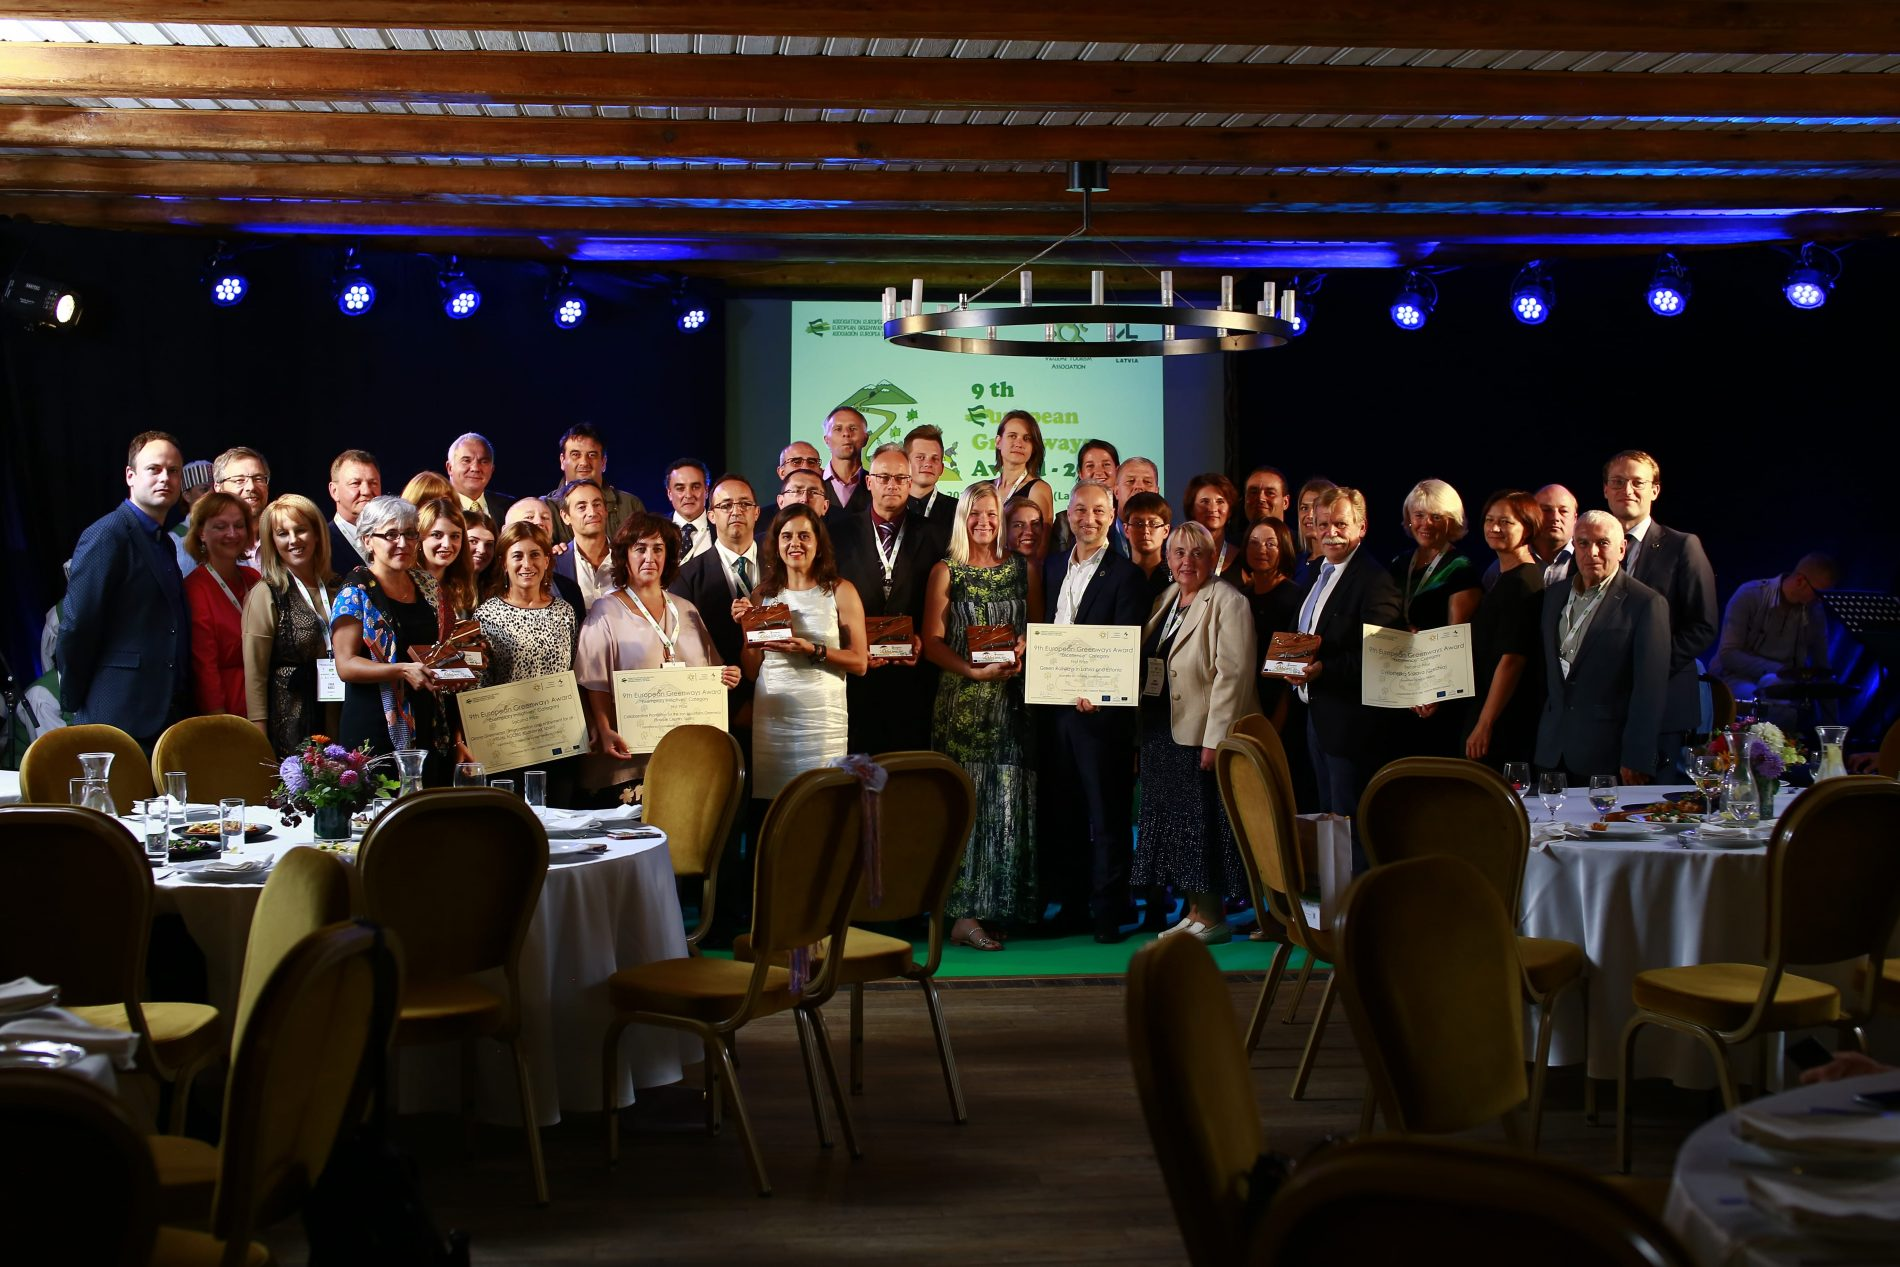 European Greenways Awards 2019